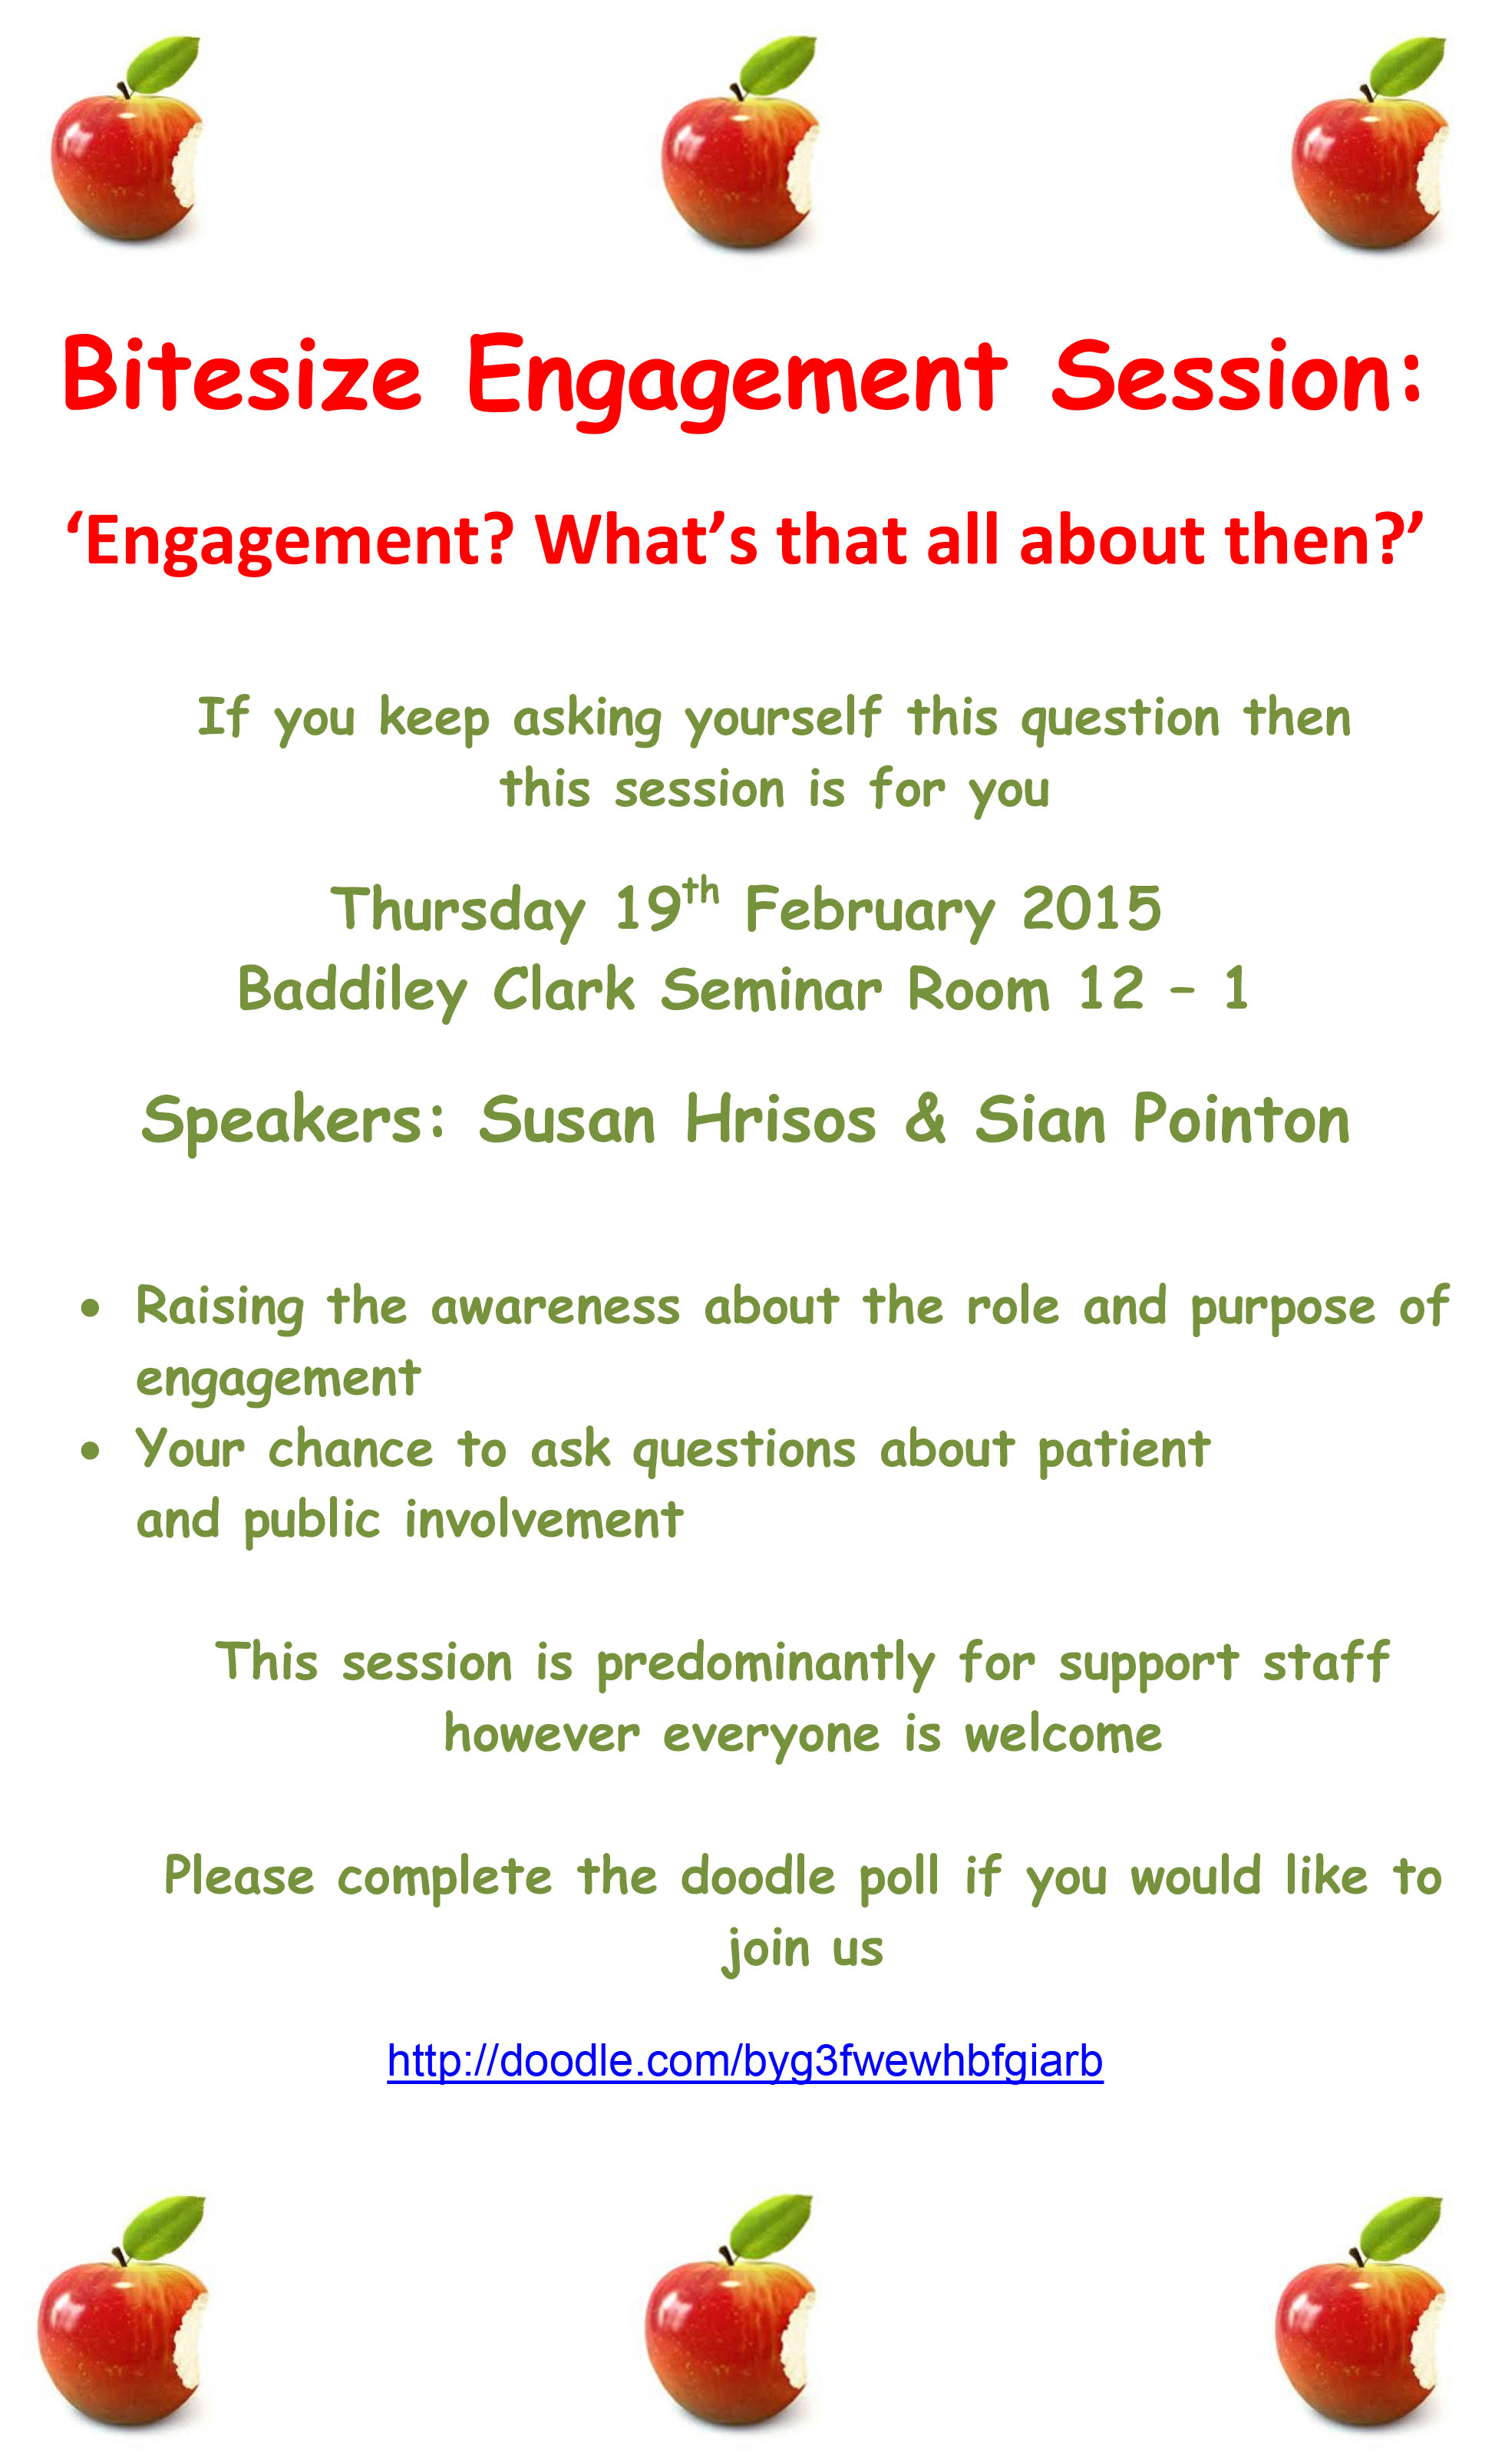 Bitesize Engagement Session poster 19th Feb 2015